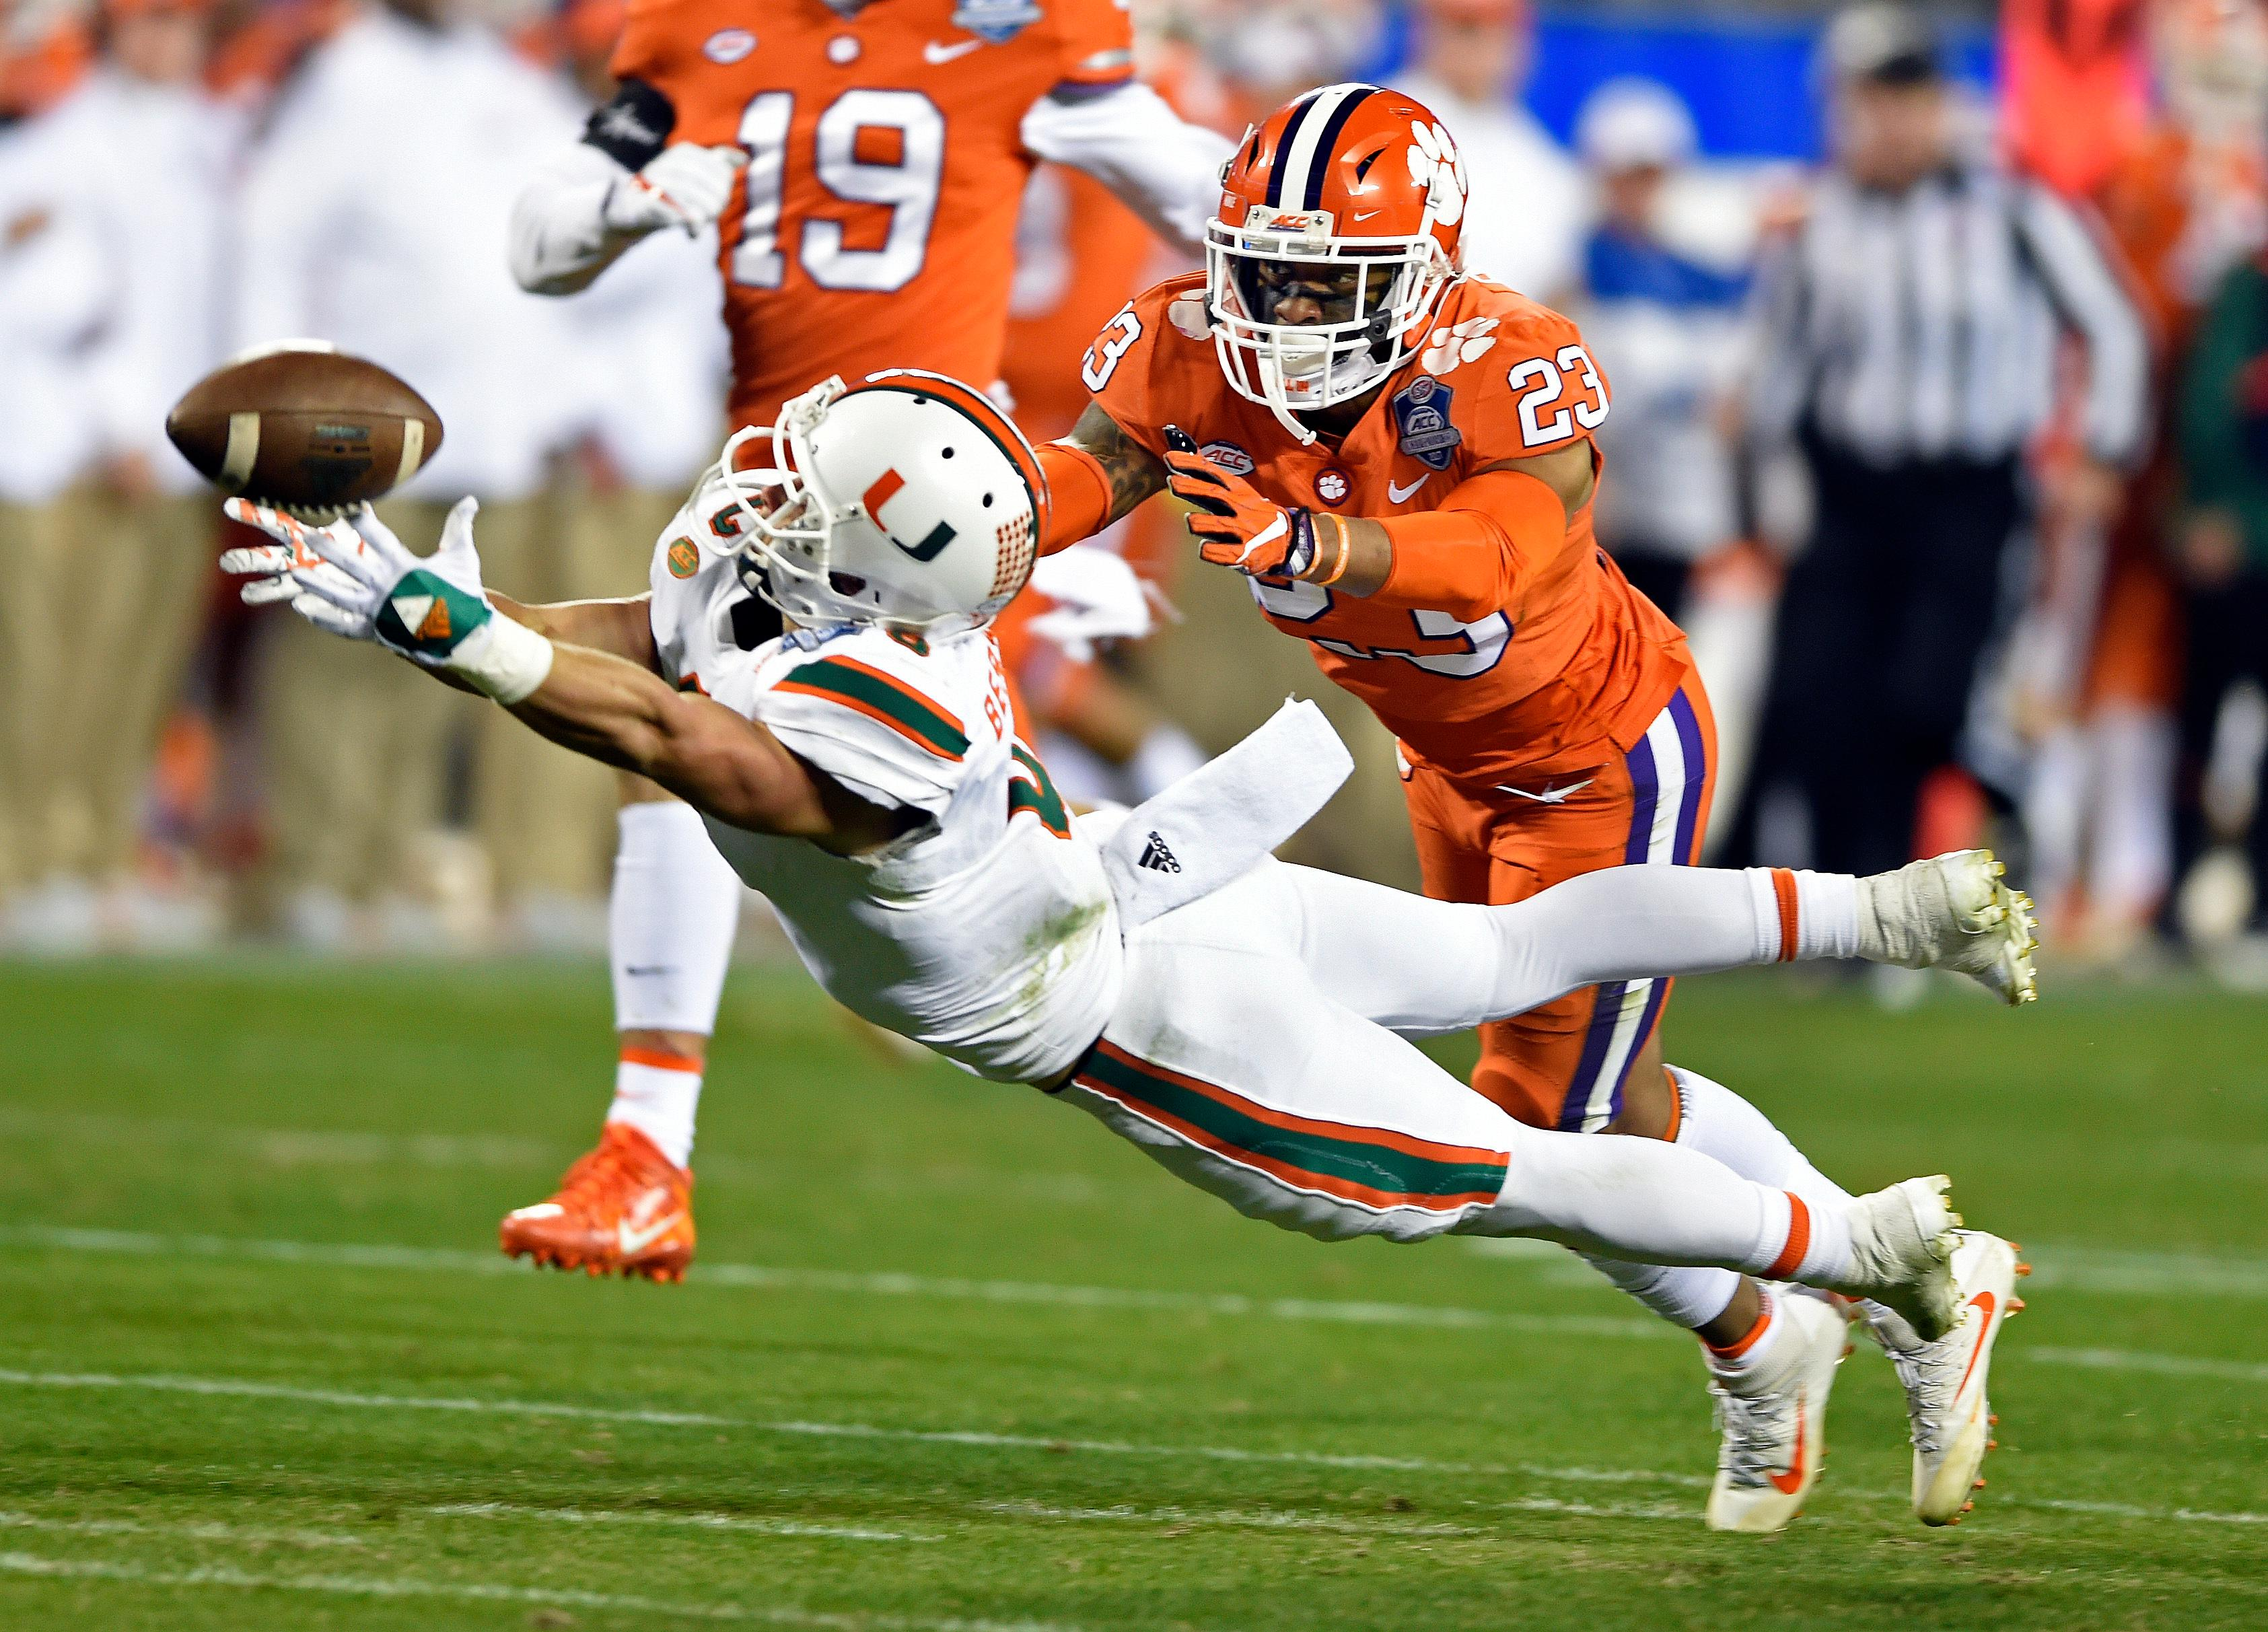 Miami's Braxton Berrios (8) misses a catch as Clemson's Van Smith (23) defends during the second half of the Atlantic Coast Conference championship NCAA college football game in Charlotte, N.C., Saturday, Dec. 2, 2017. (AP Photo/Mike McCarn)